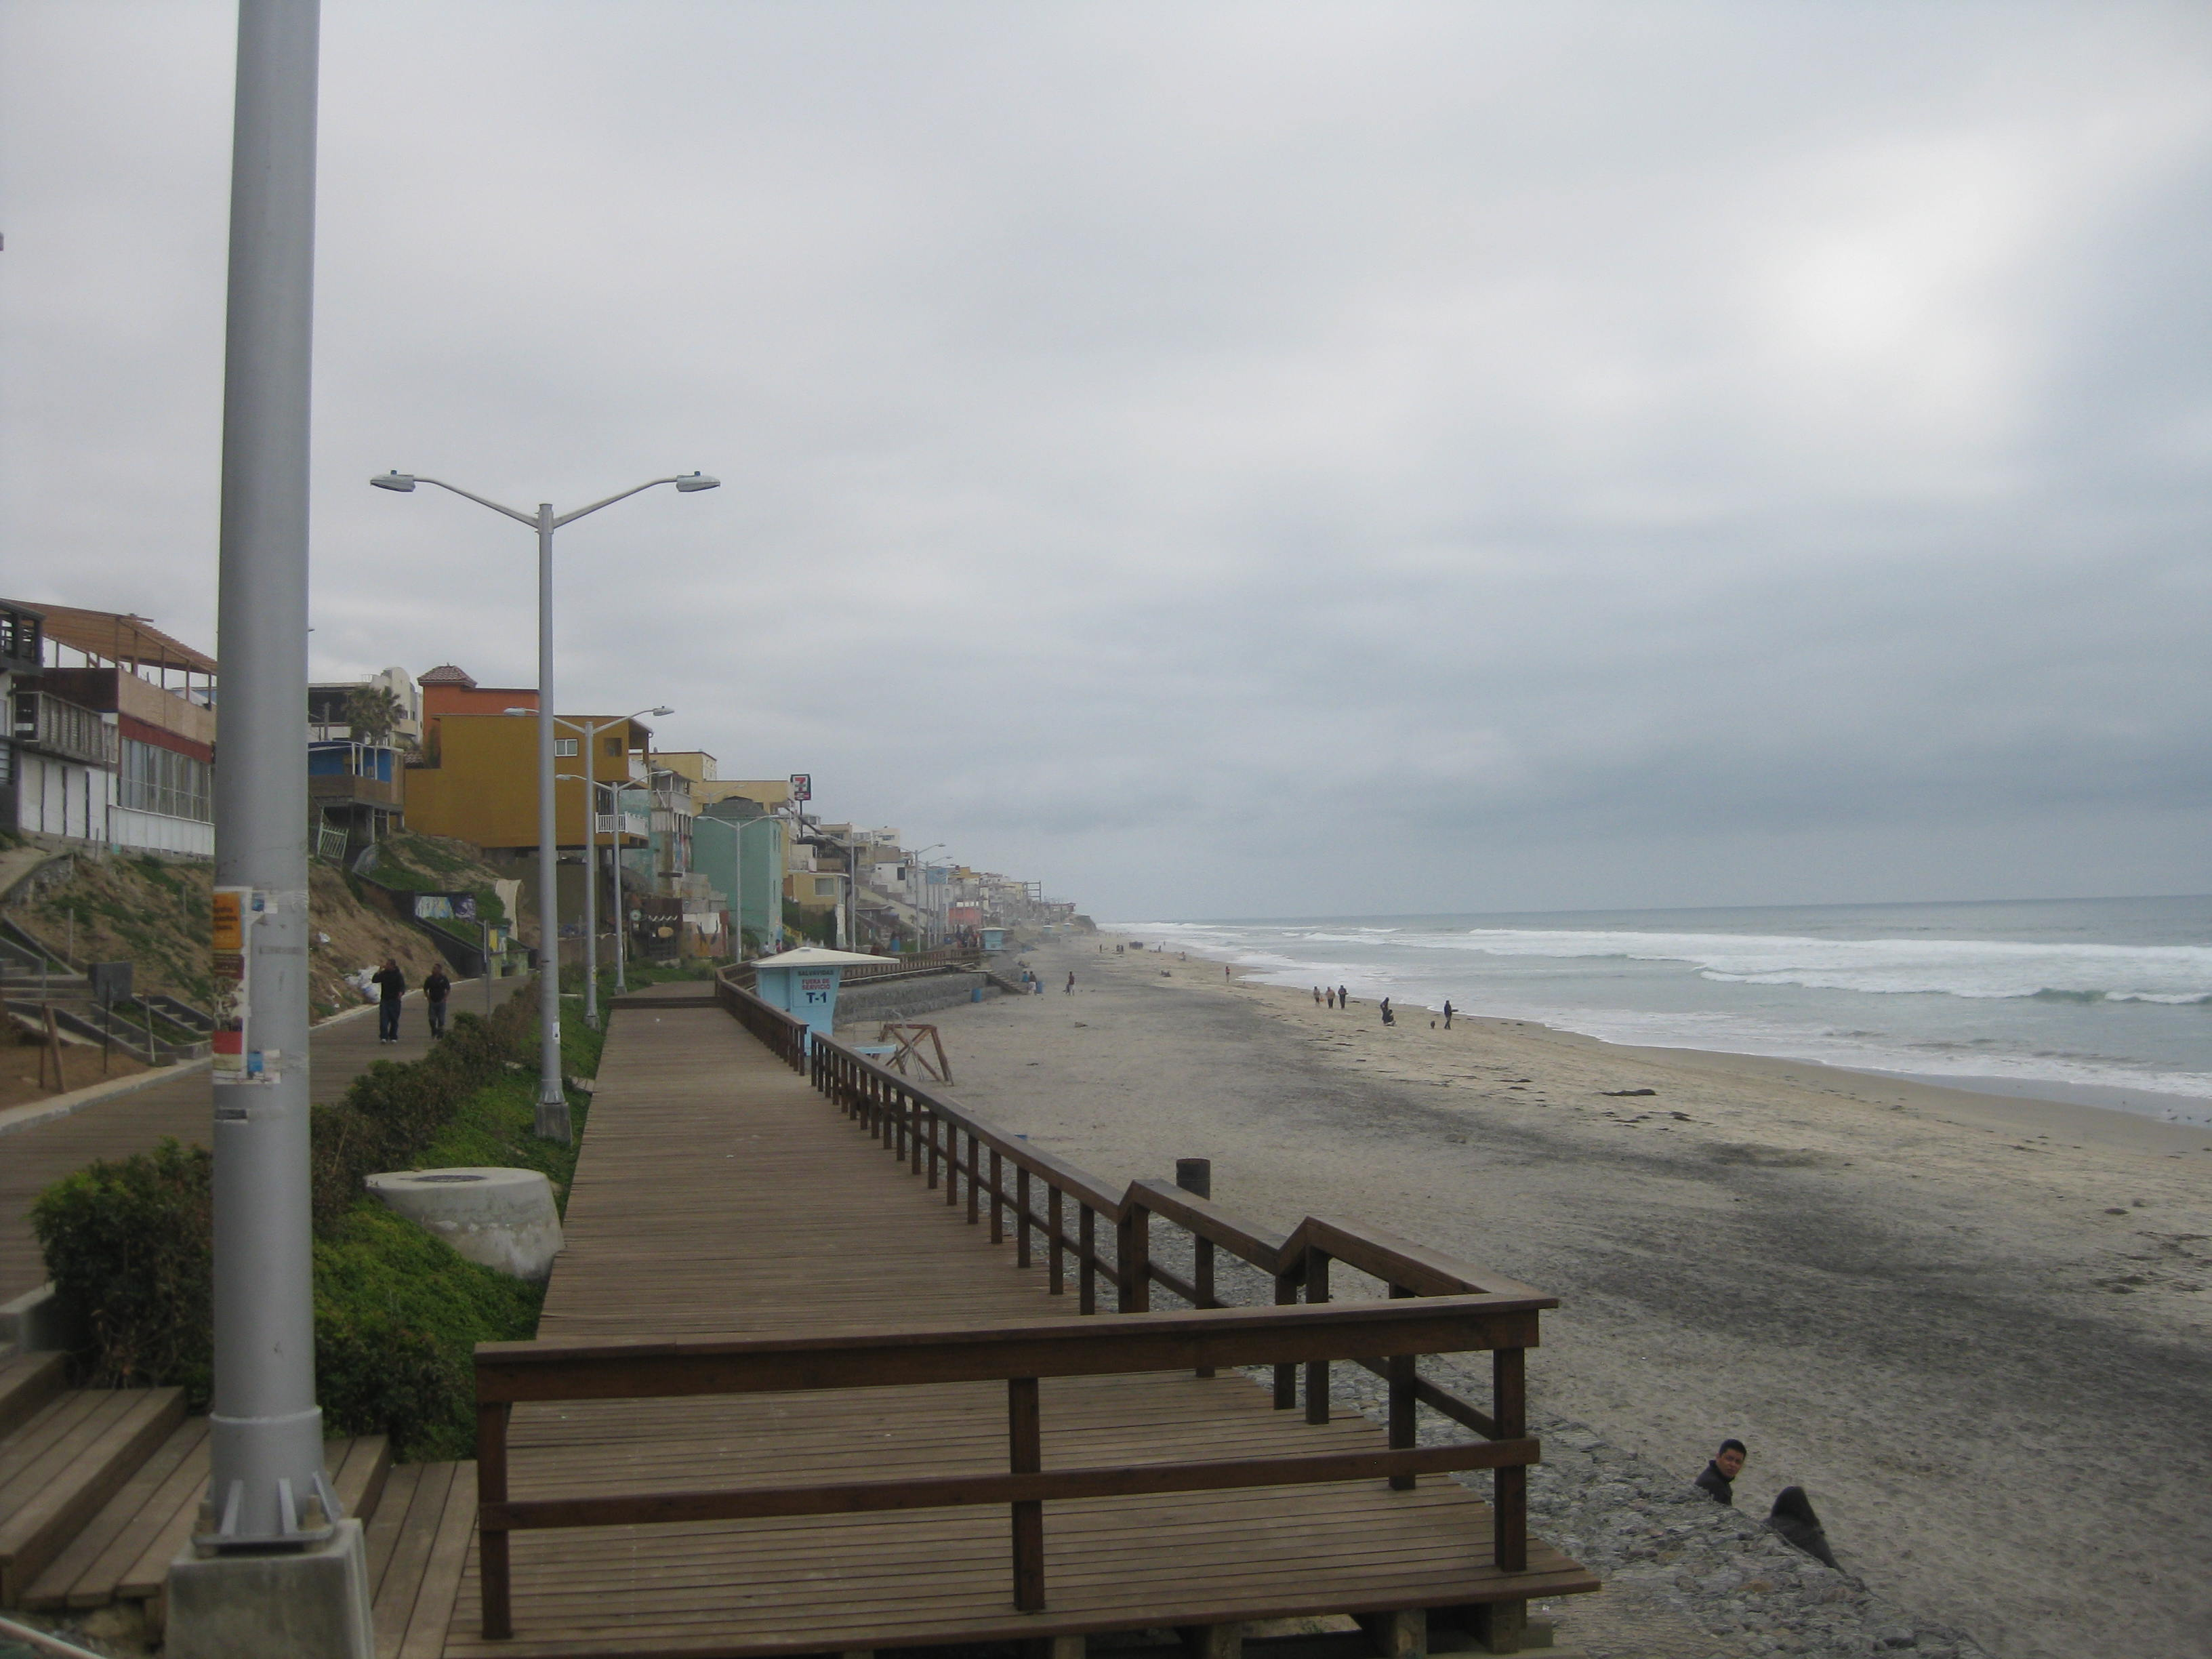 Boardwalk Tijuana